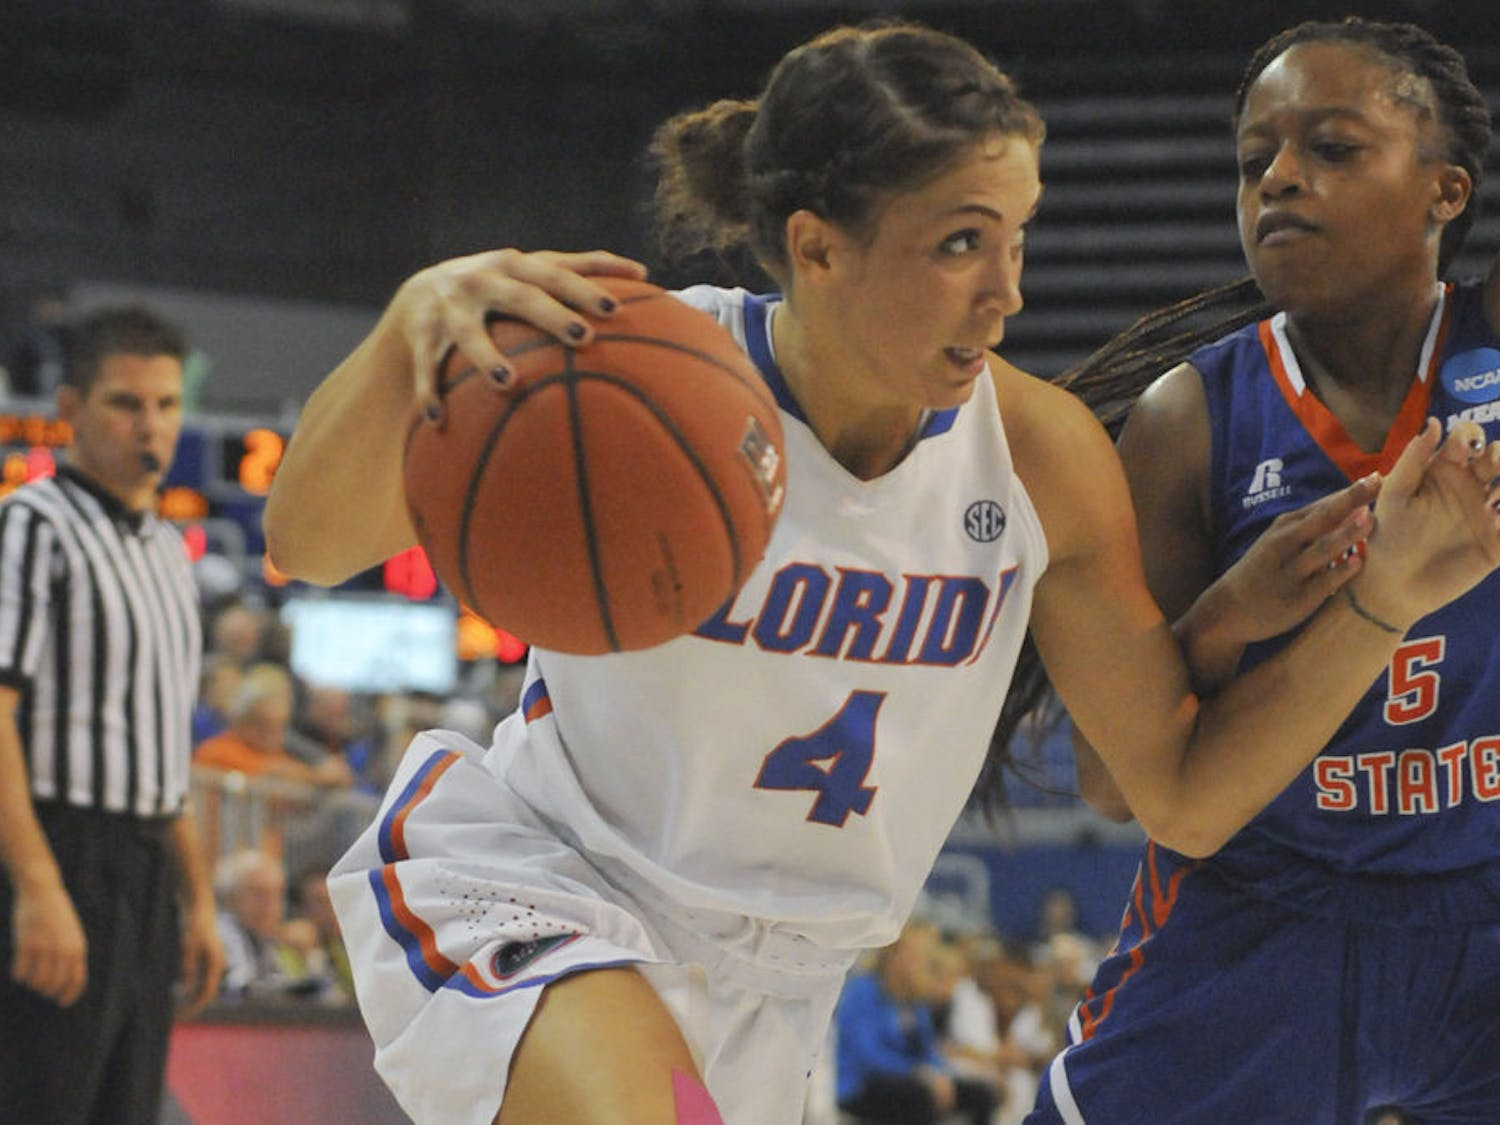 UF point guard Carlie Needles drives to the basket during Florida's 99-34 win over Savannah State on Nov. 24, 2015, in the O'Connell Center.